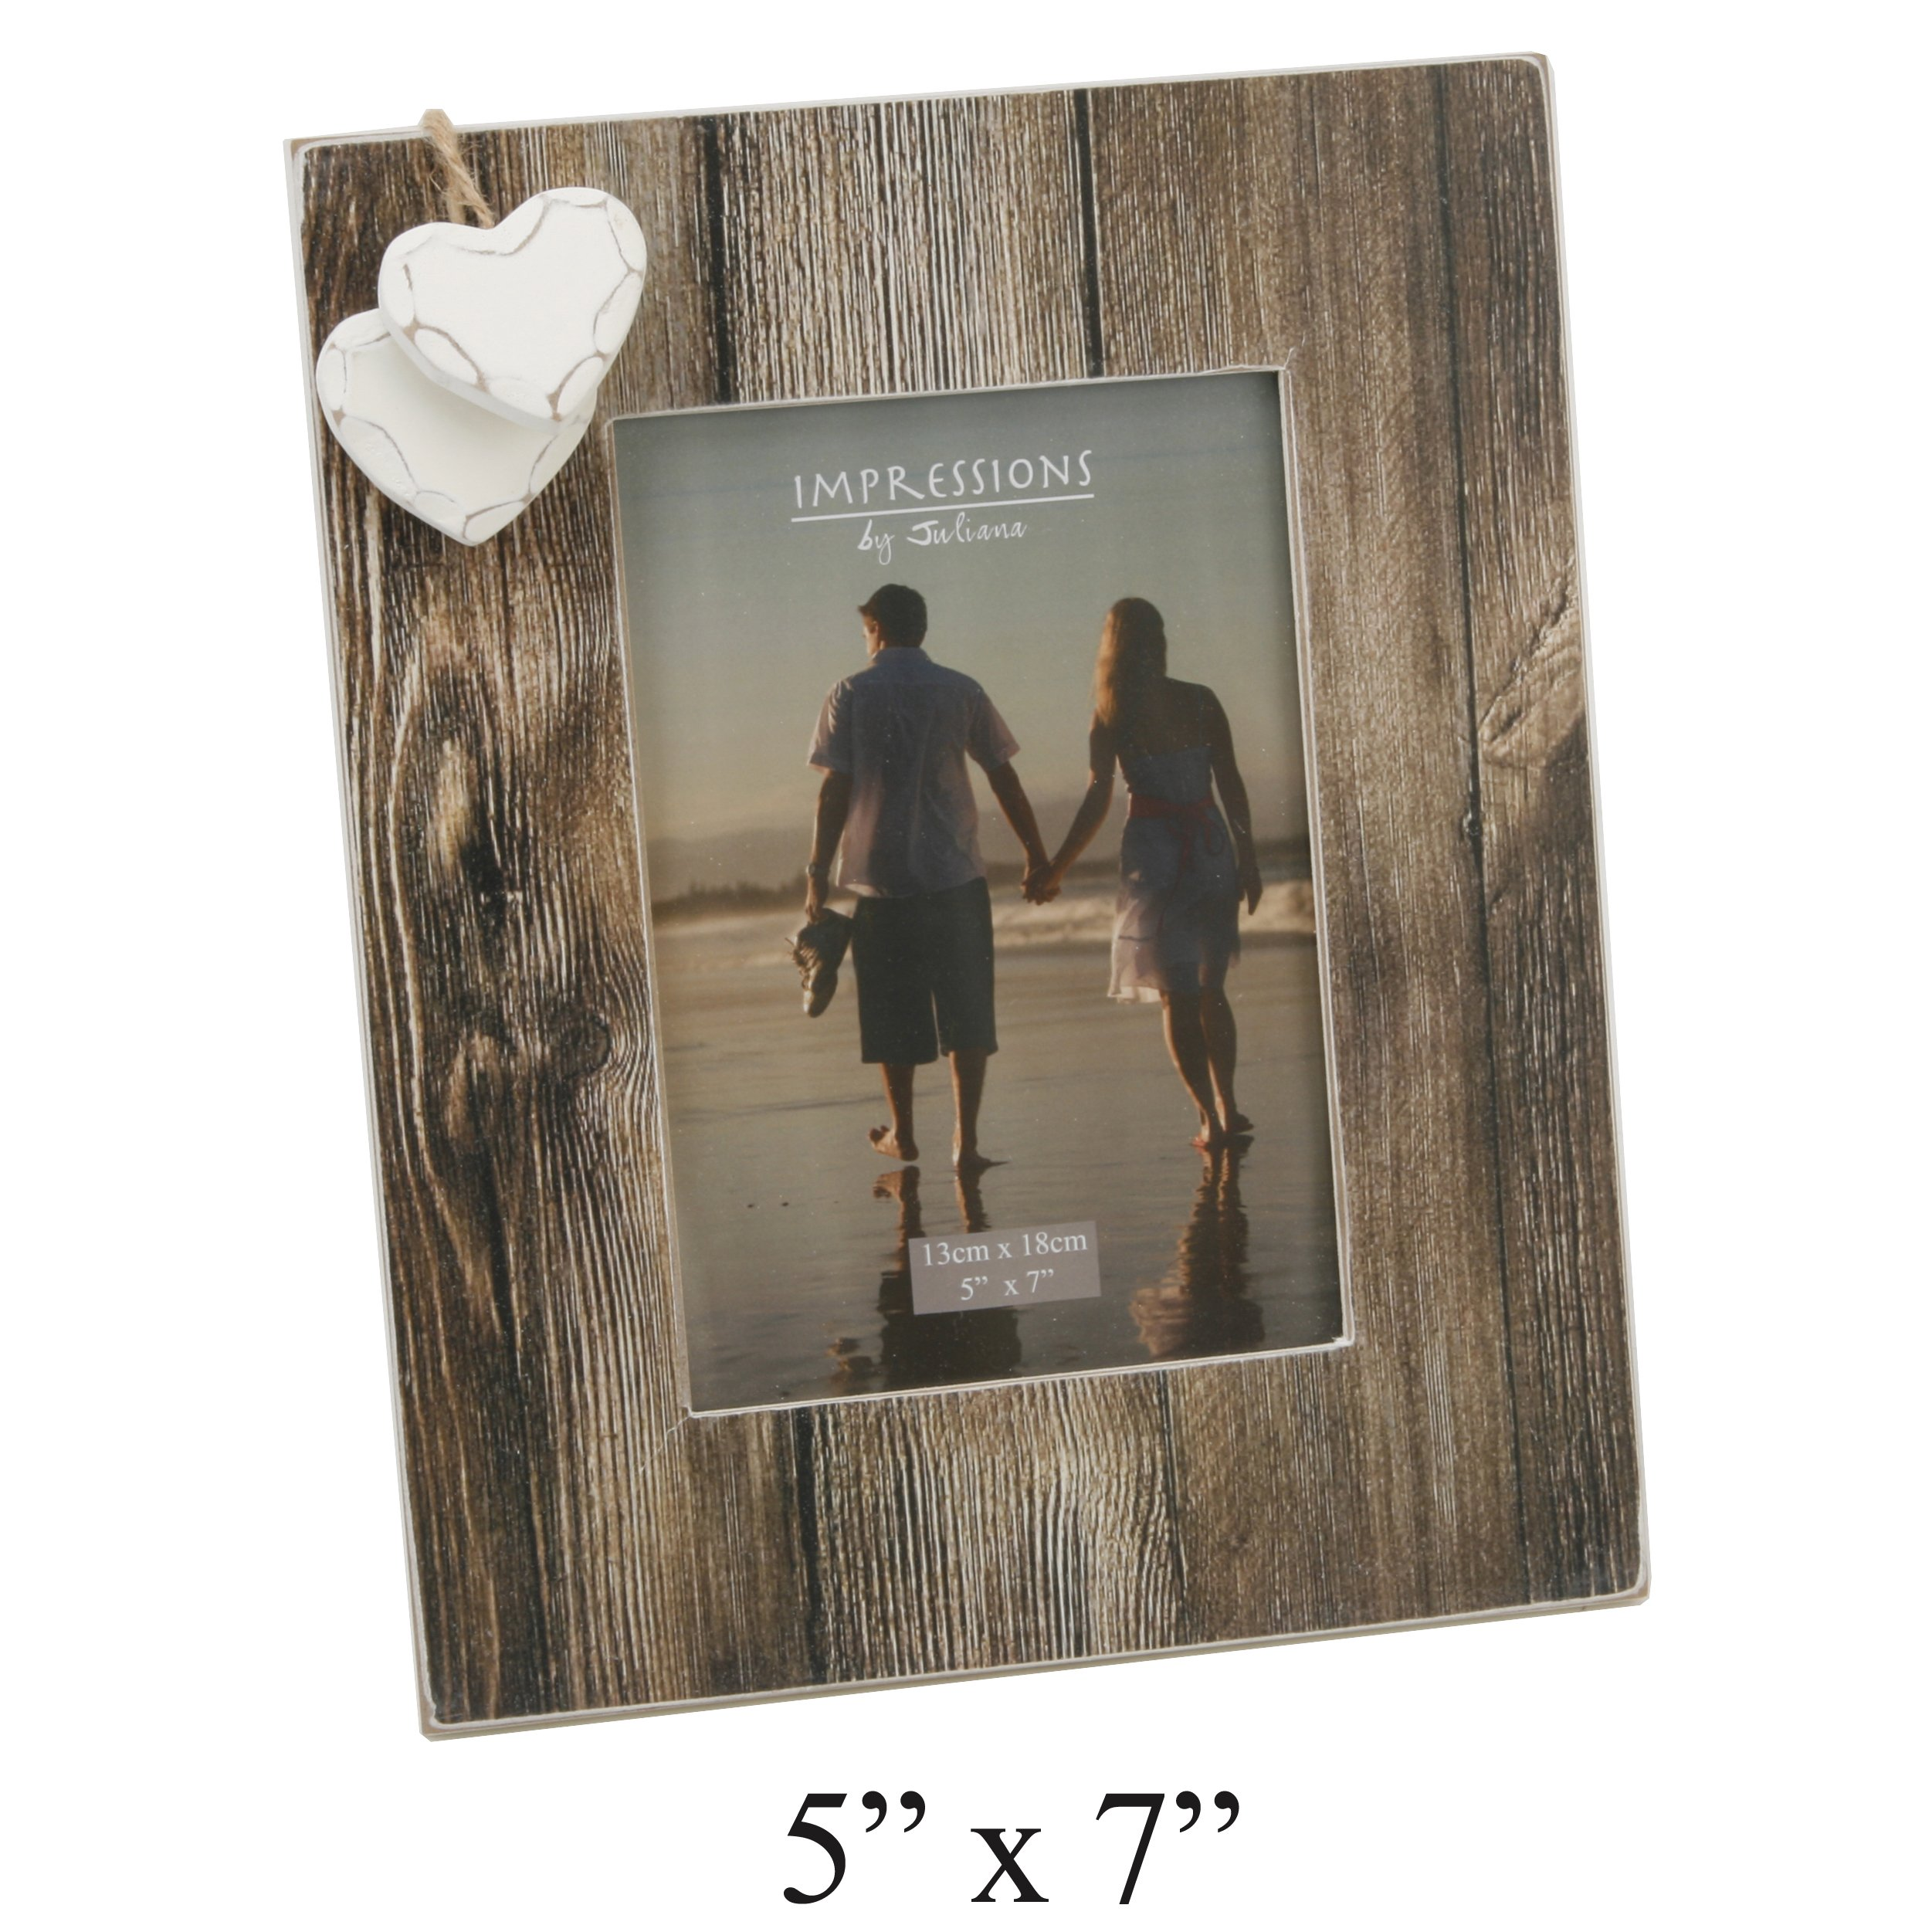 Oaktree Gifts 2 Heart Love Distressed Wood Effect Frame 5 x 7